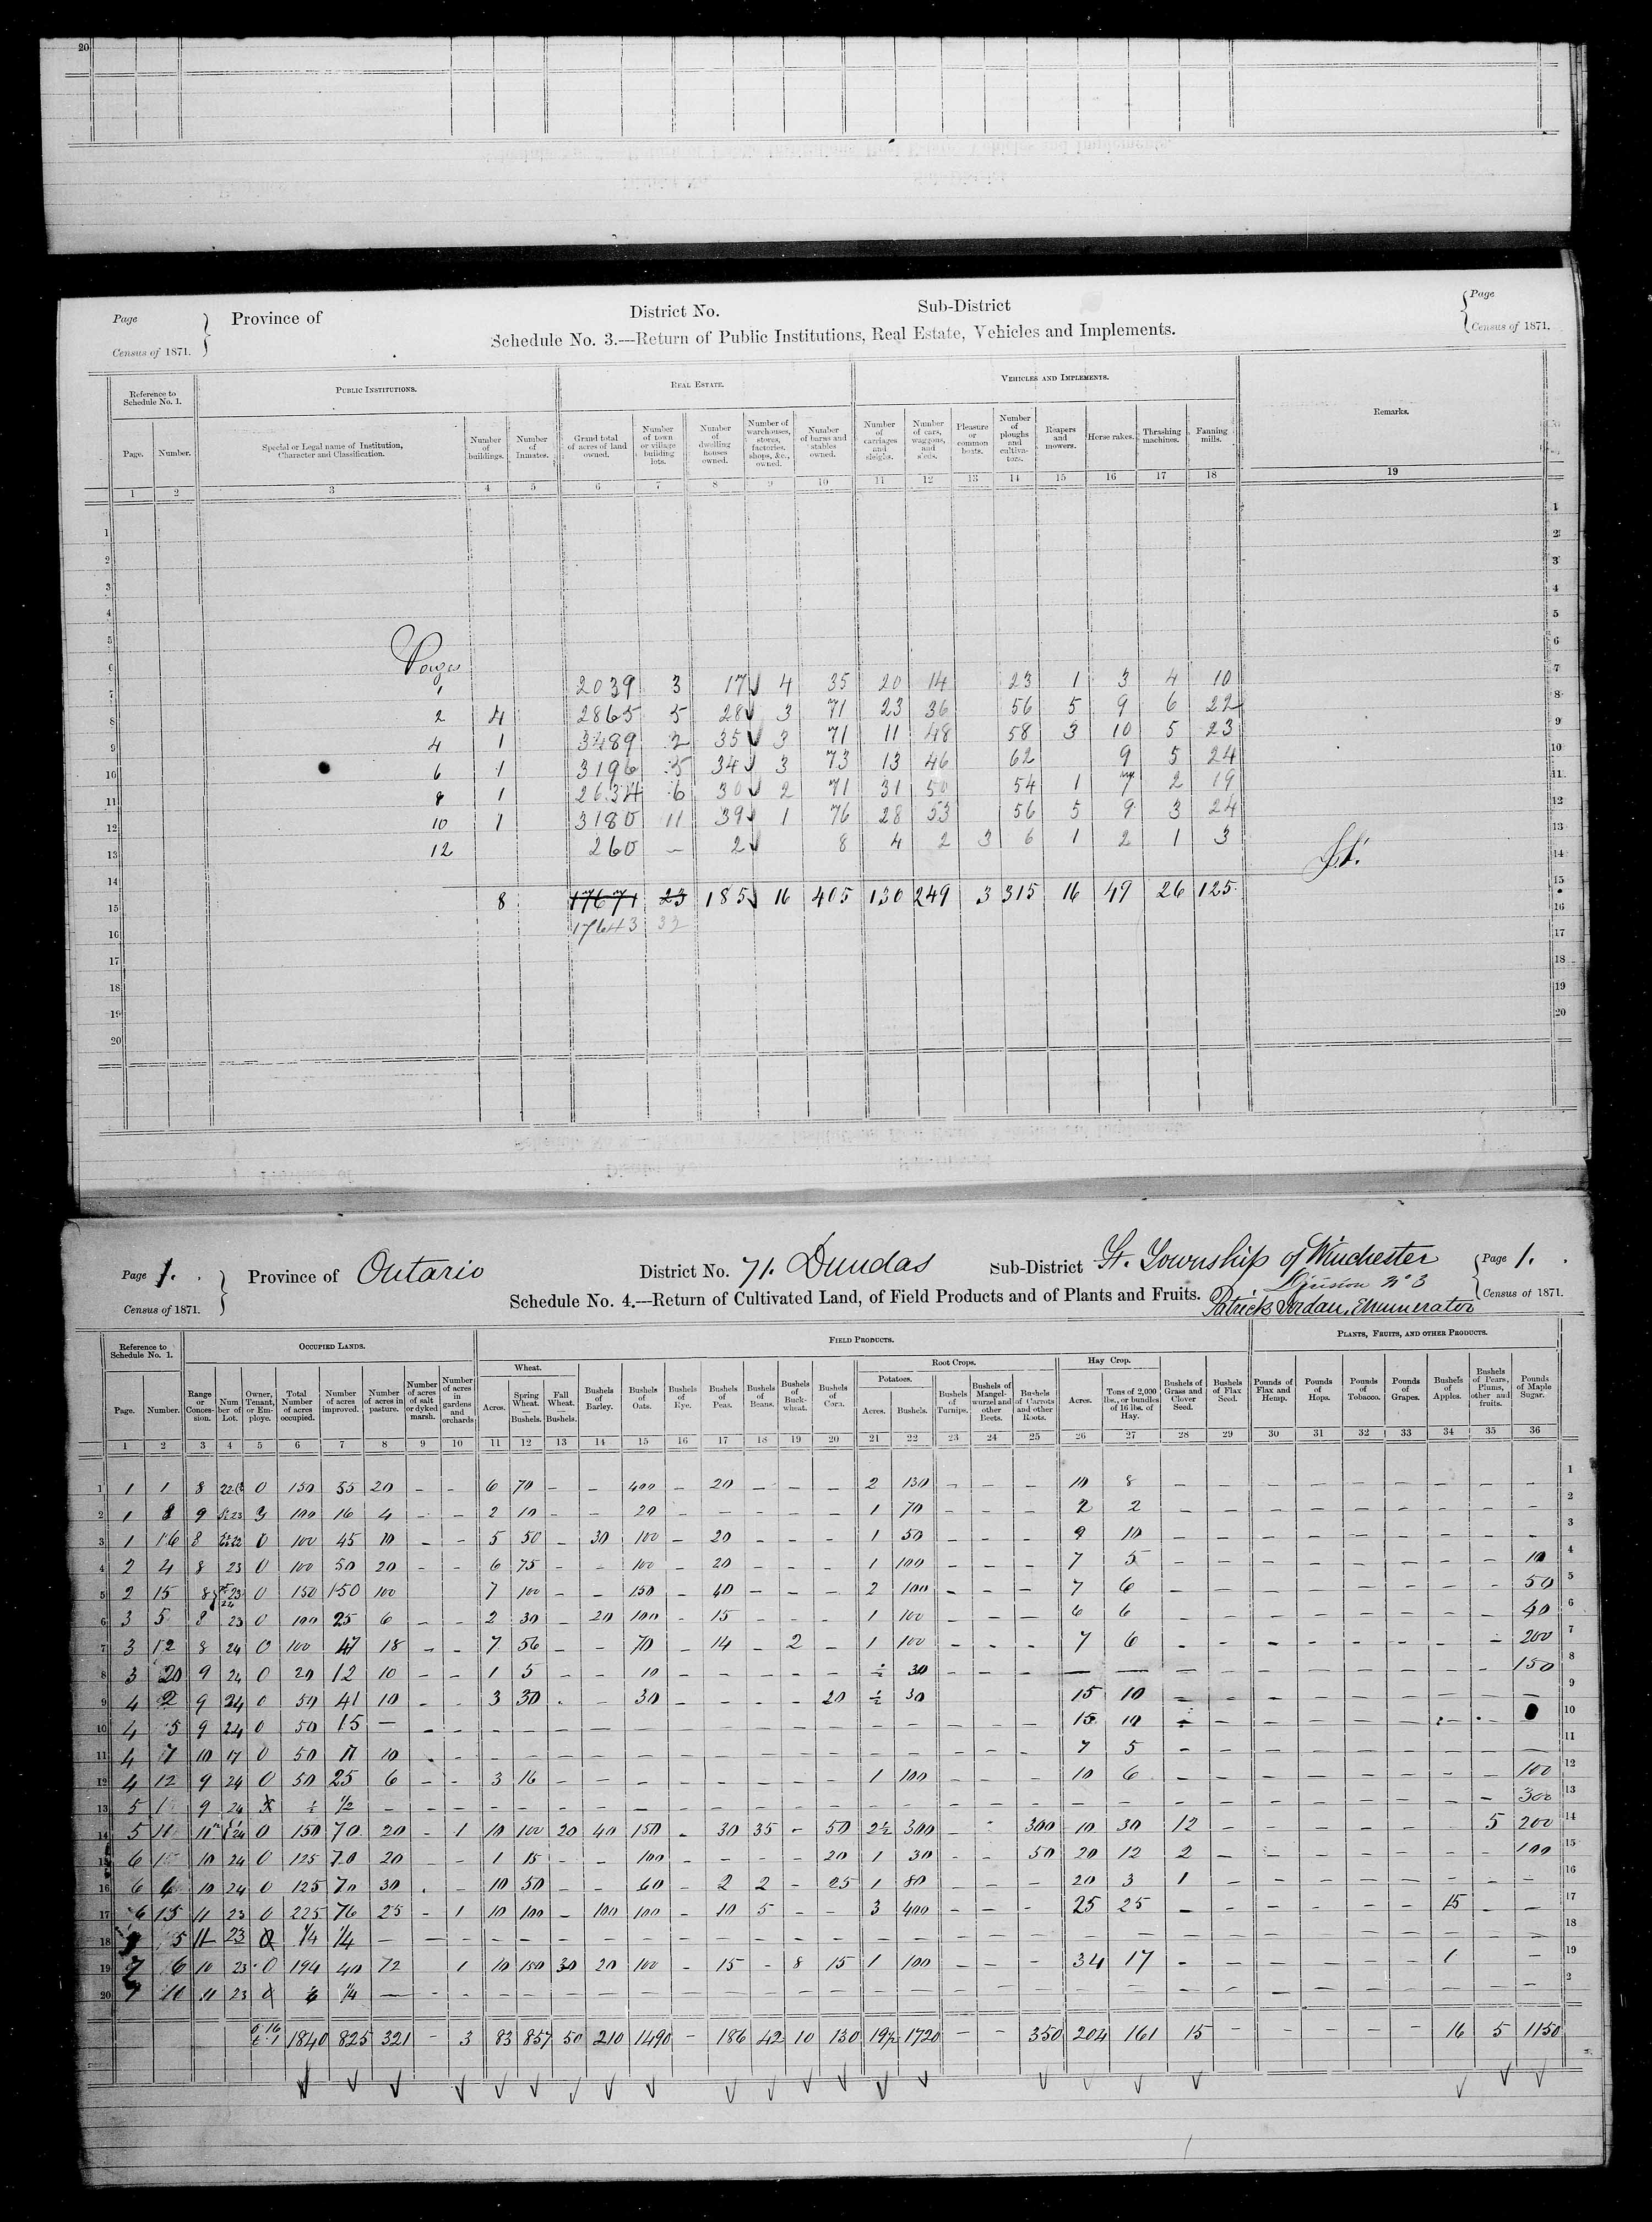 Title: Census of Canada, 1871 - Mikan Number: 142105 - Microform: c-10007